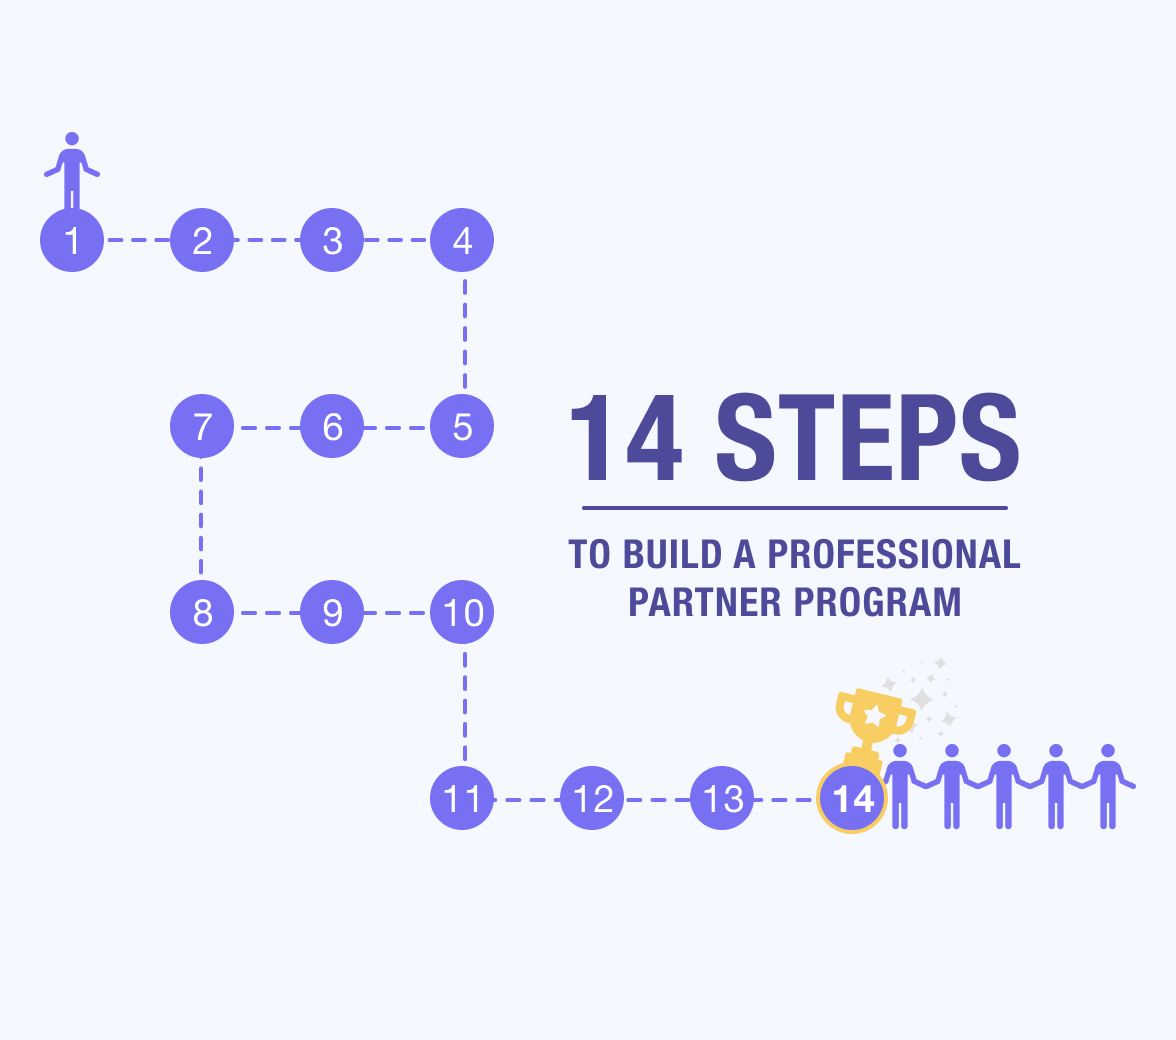 Partner Program - 14 steps to build one by Daniel Nilsson